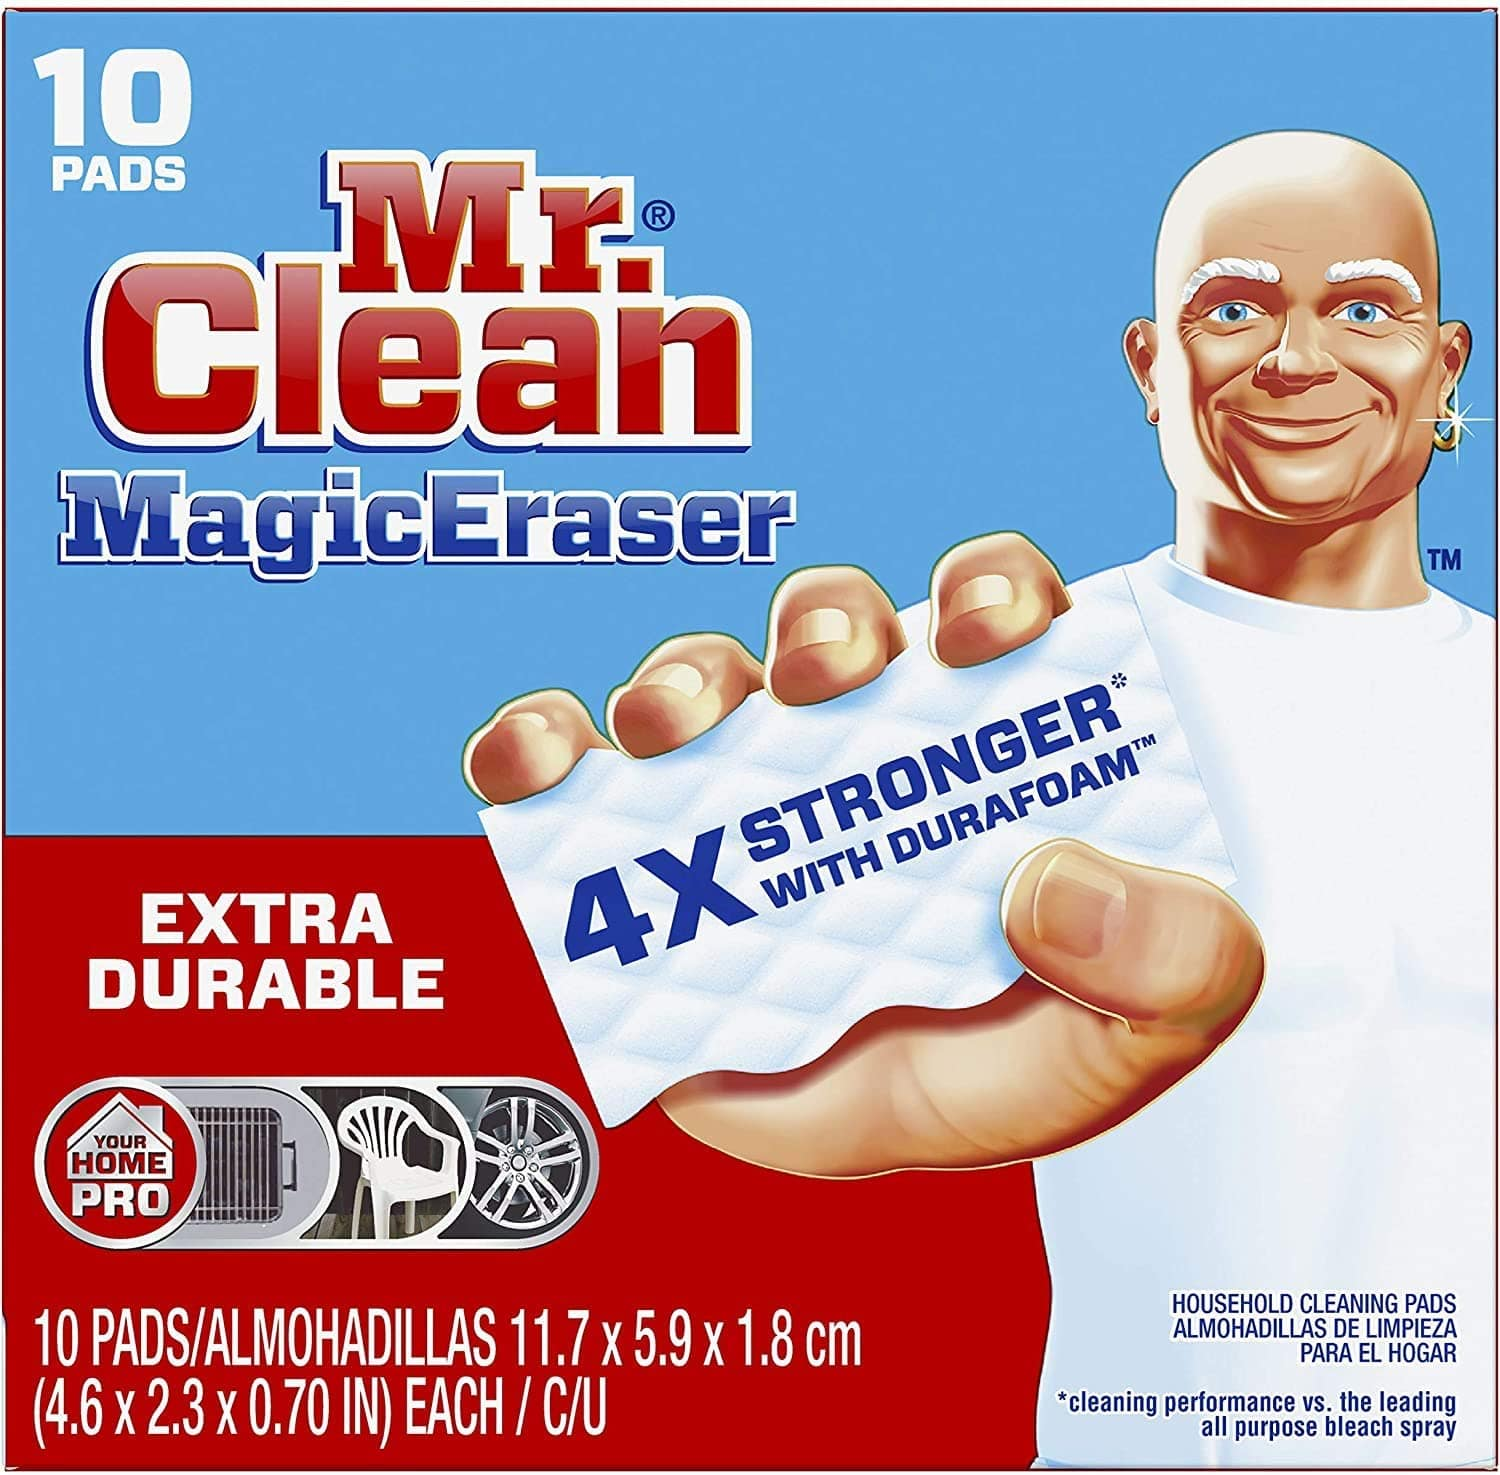 10-Count Mr. Clean Magic Eraser Extra Durable $7.79 w/ S&S + Free Shipping w/ Prime or on $25+